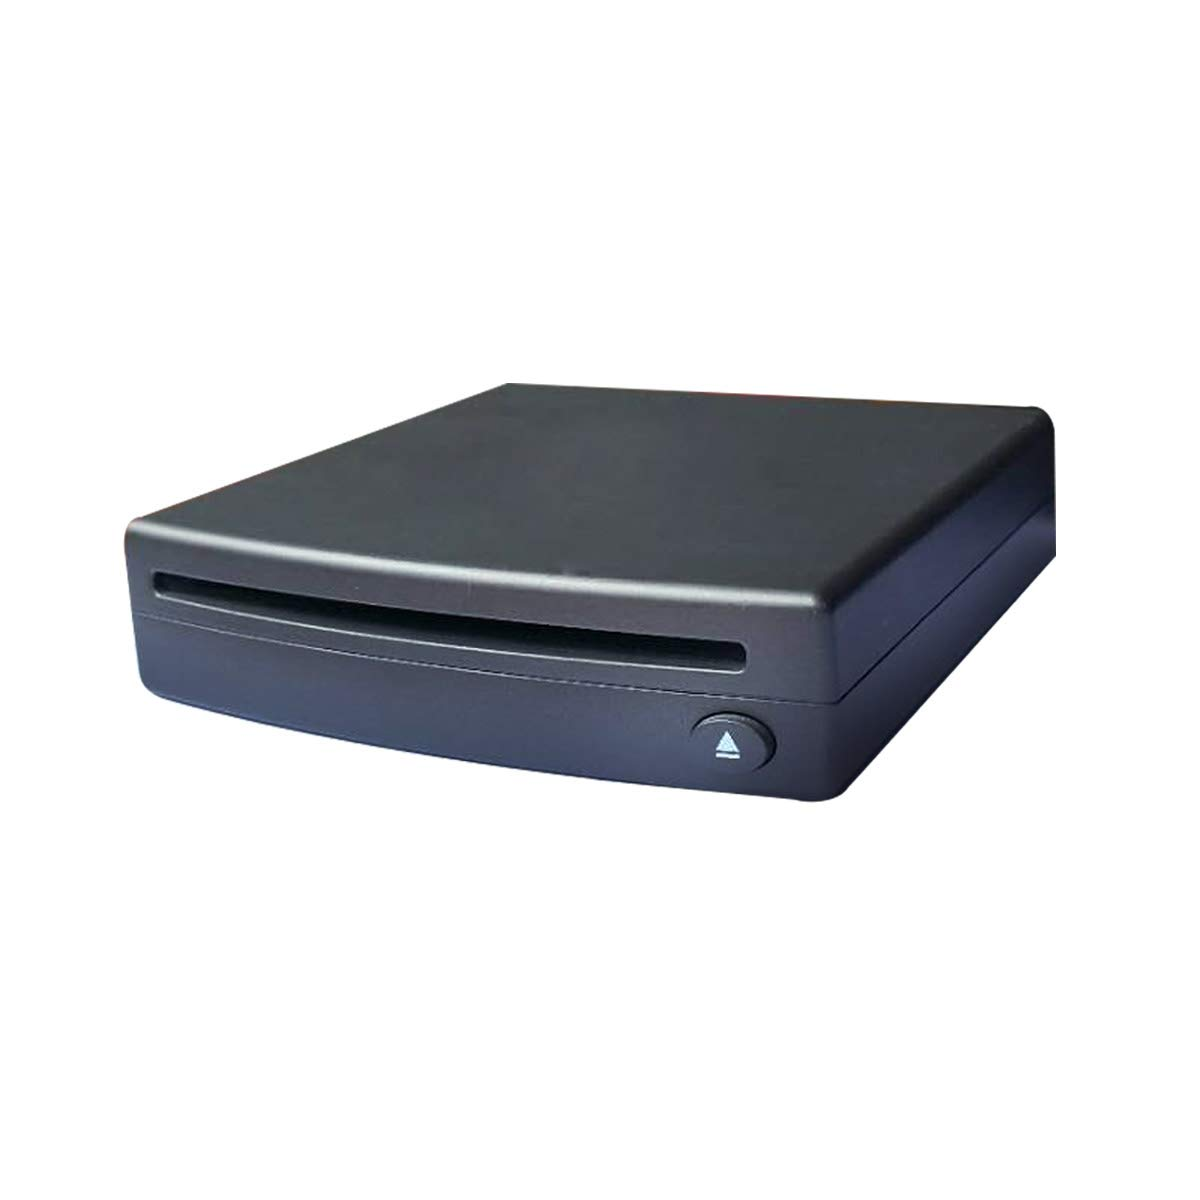 ATOTO DVD/CD/Disc ROM BOX - Works with ATOTO M4 Series